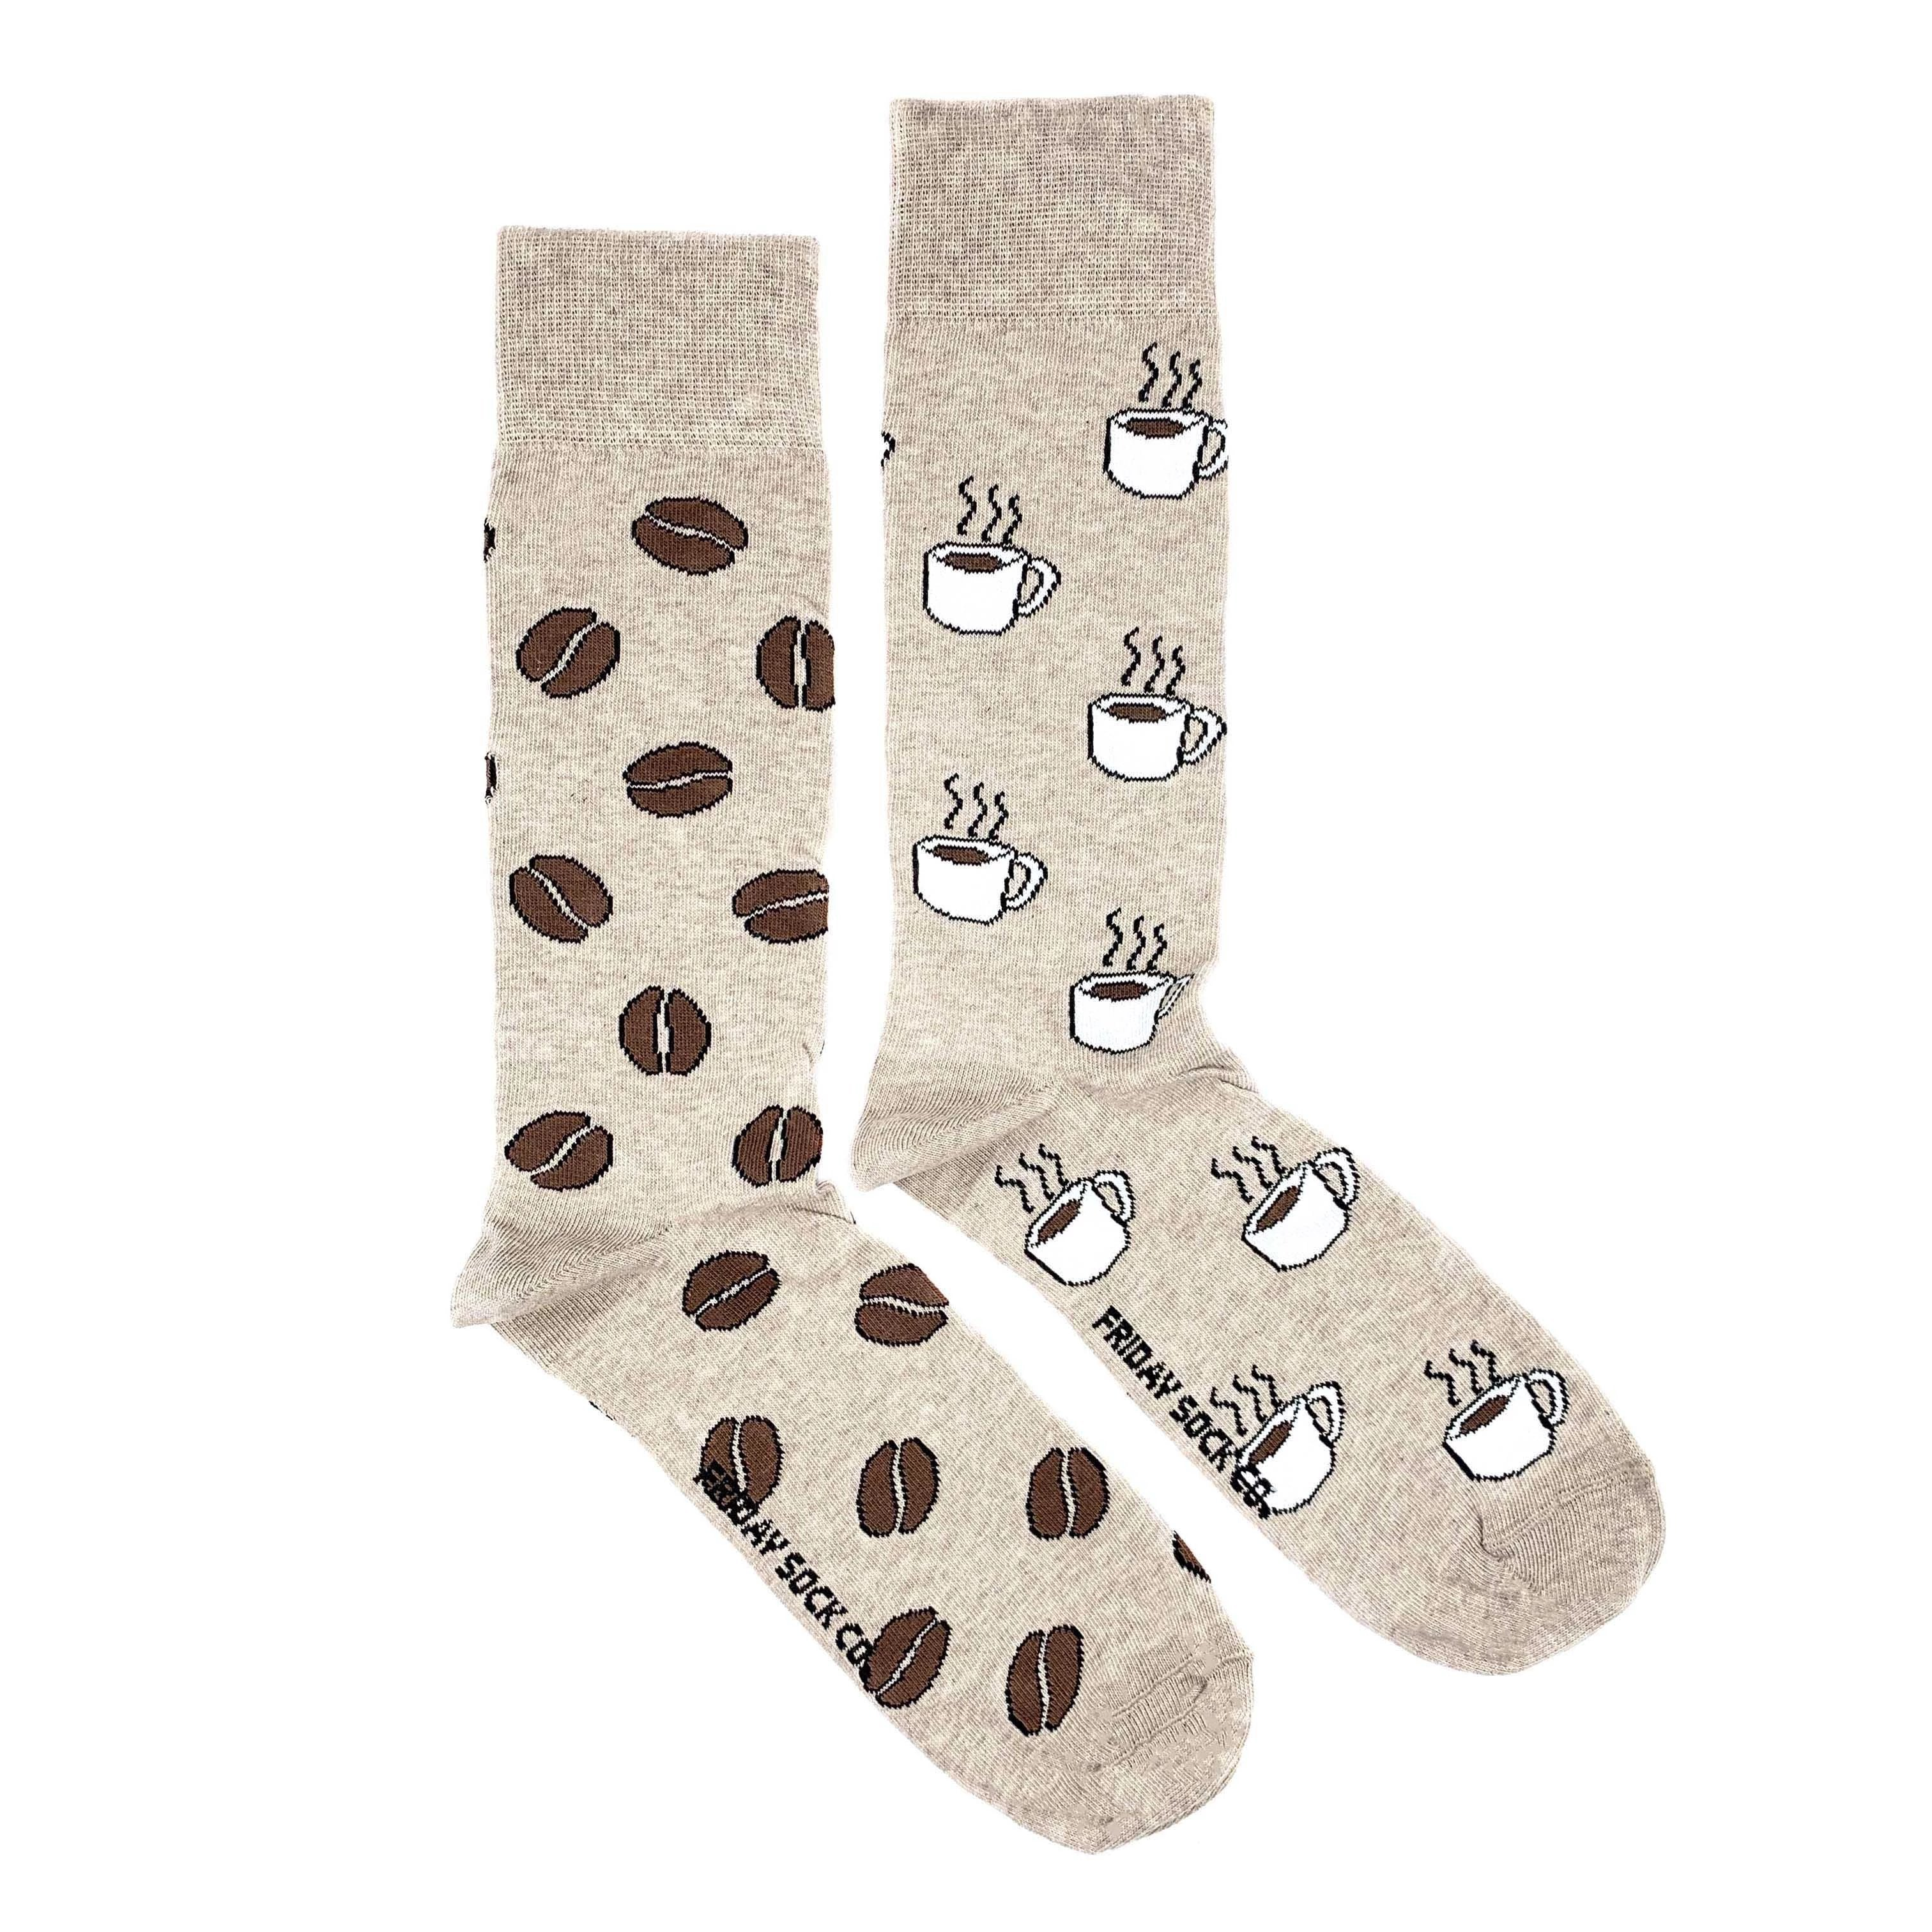 Men's Midcalf Socks - Coffee Beans